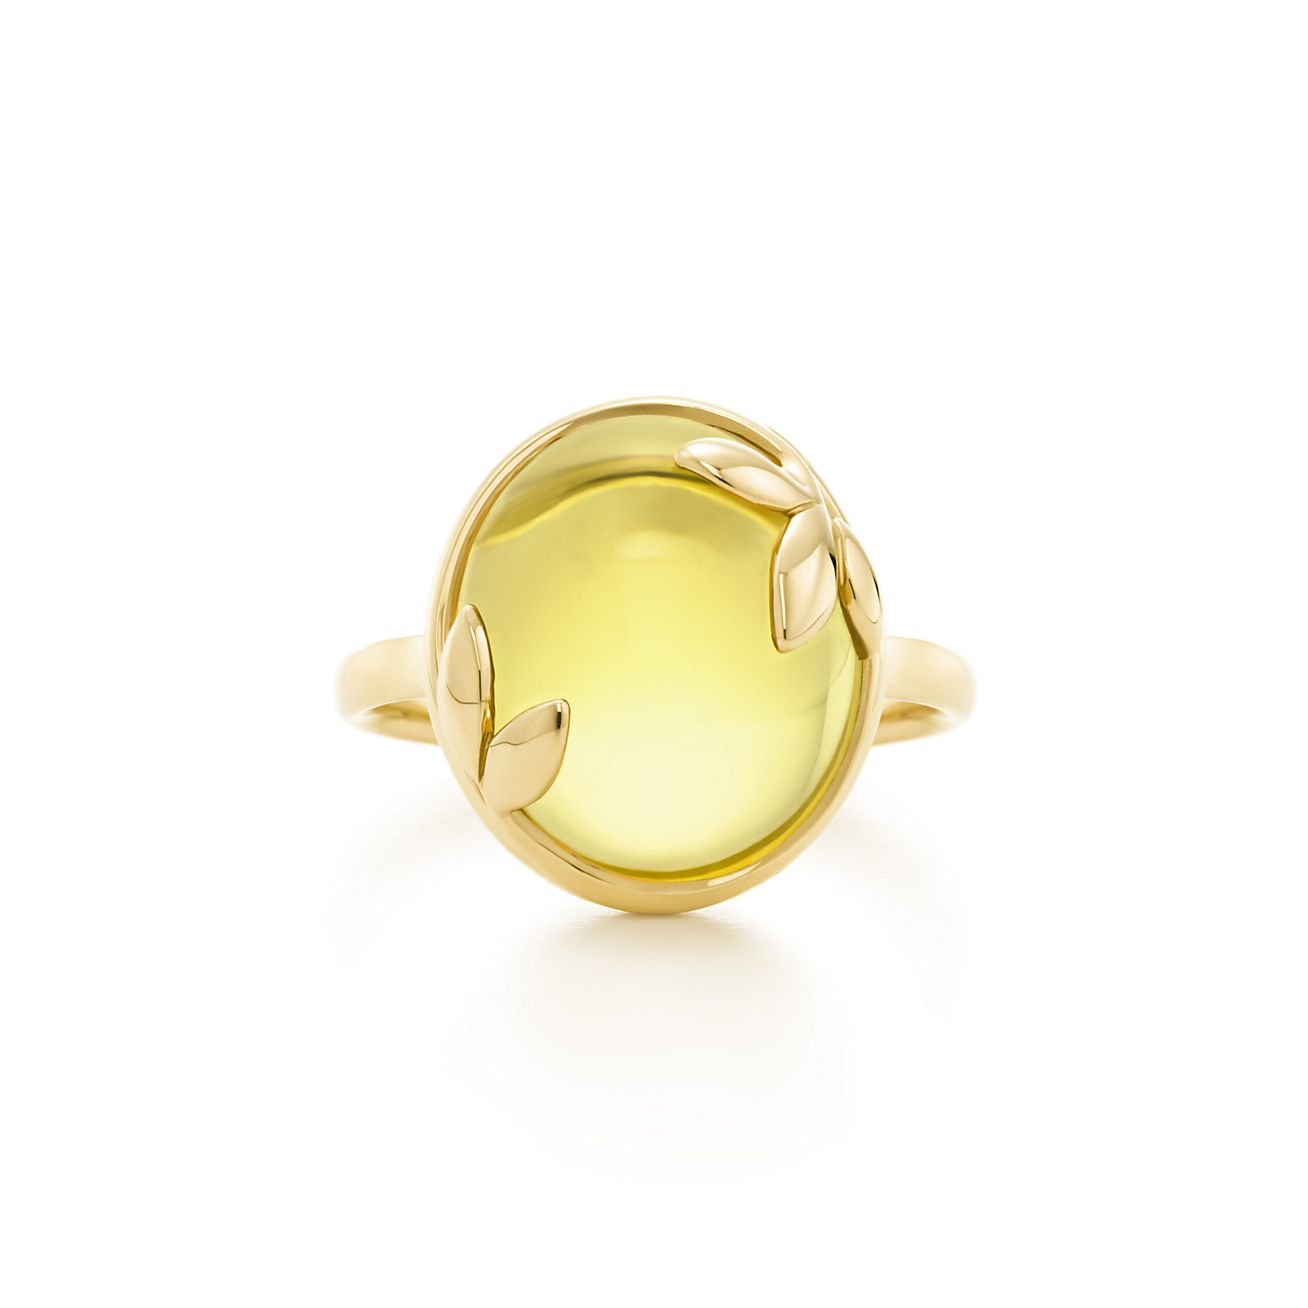 Paloma Picasso Olive Leaf ring in 18k gold with a citrine - Size 6 Tiffany & Co.